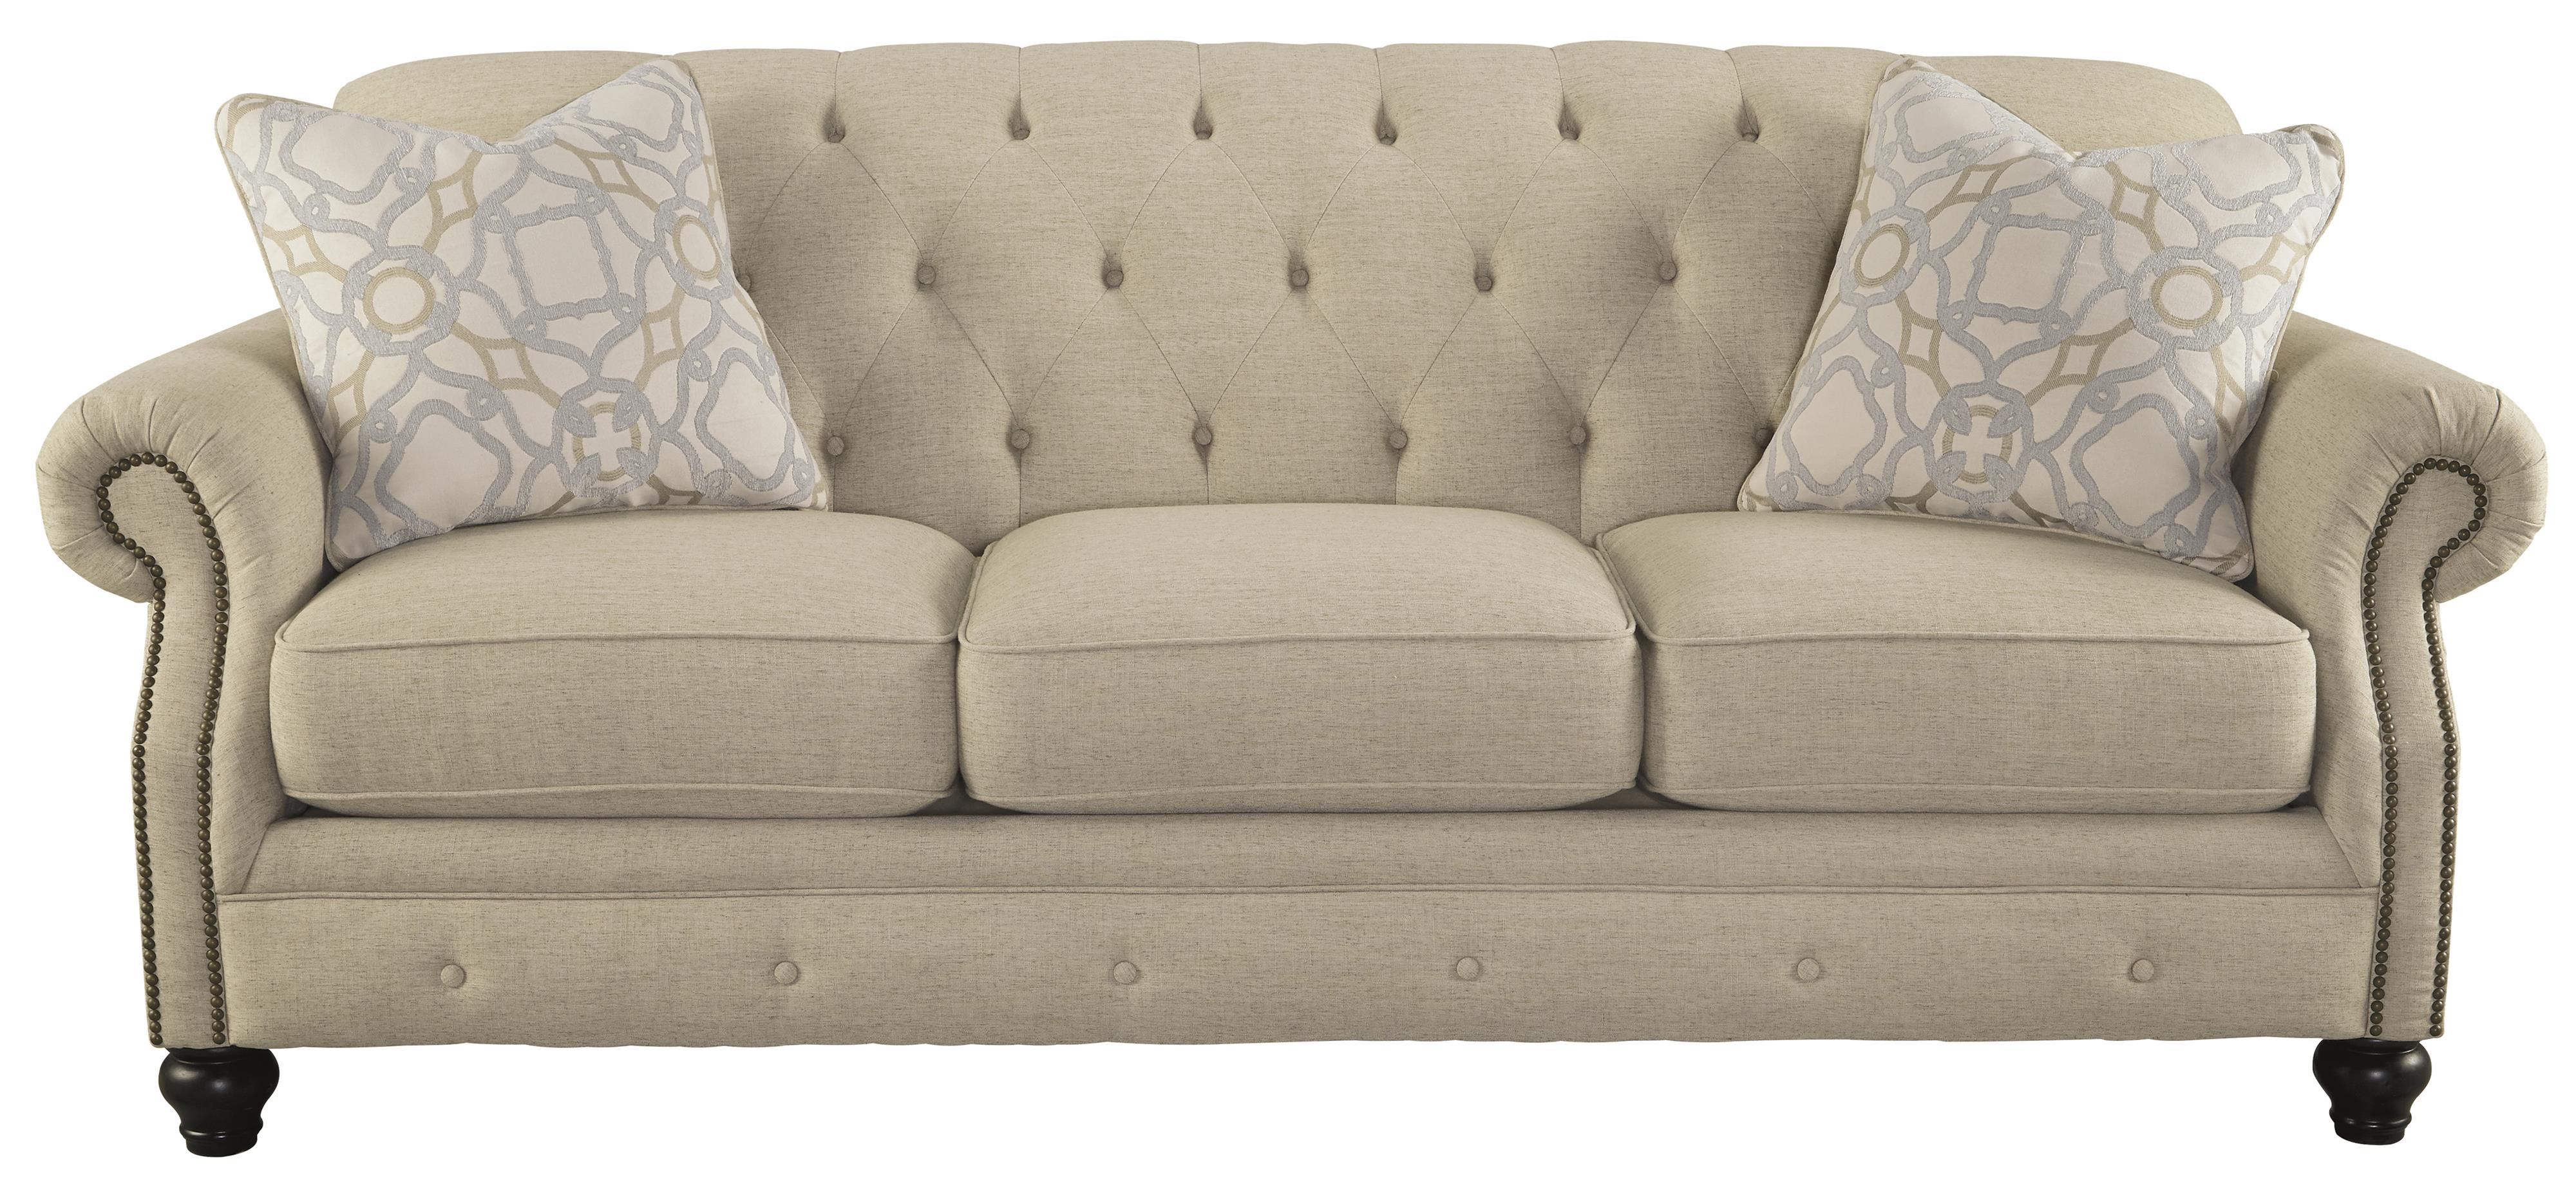 Signature Design By Ashley Kieran Sofa Item Number 4400038